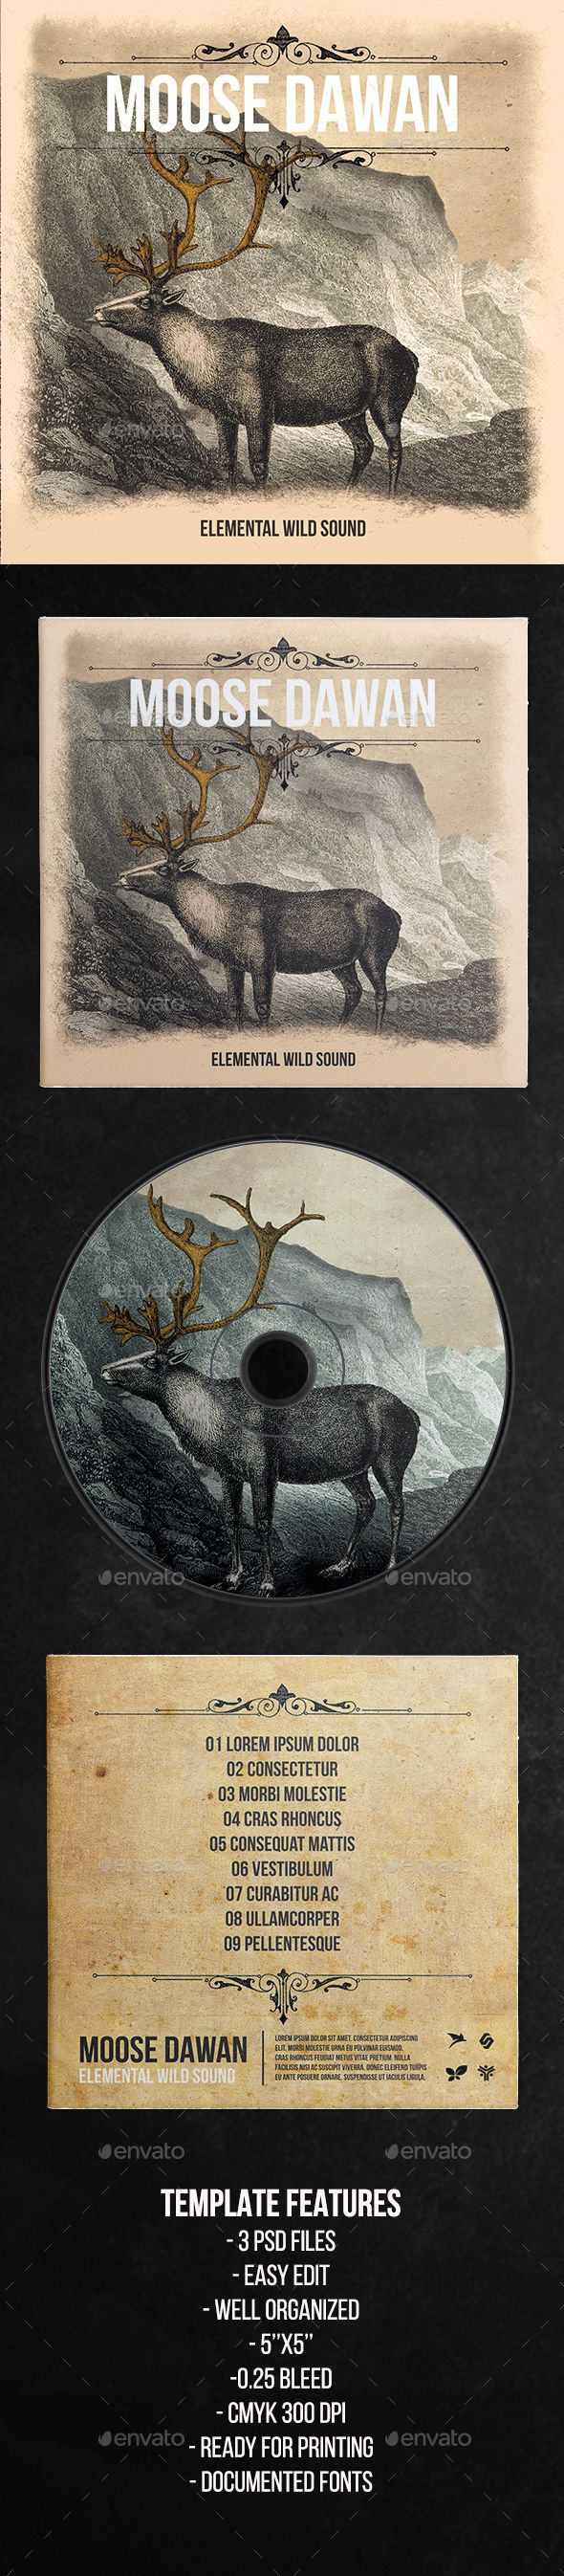 Elemental Wild Sound  CD Cover Artwork Template — Photoshop PSD #orange #cover • Download ➝ https://graphicriver.net/item/elemental-wild-sound-cd-cover-artwork-template/19209454?ref=pxcr